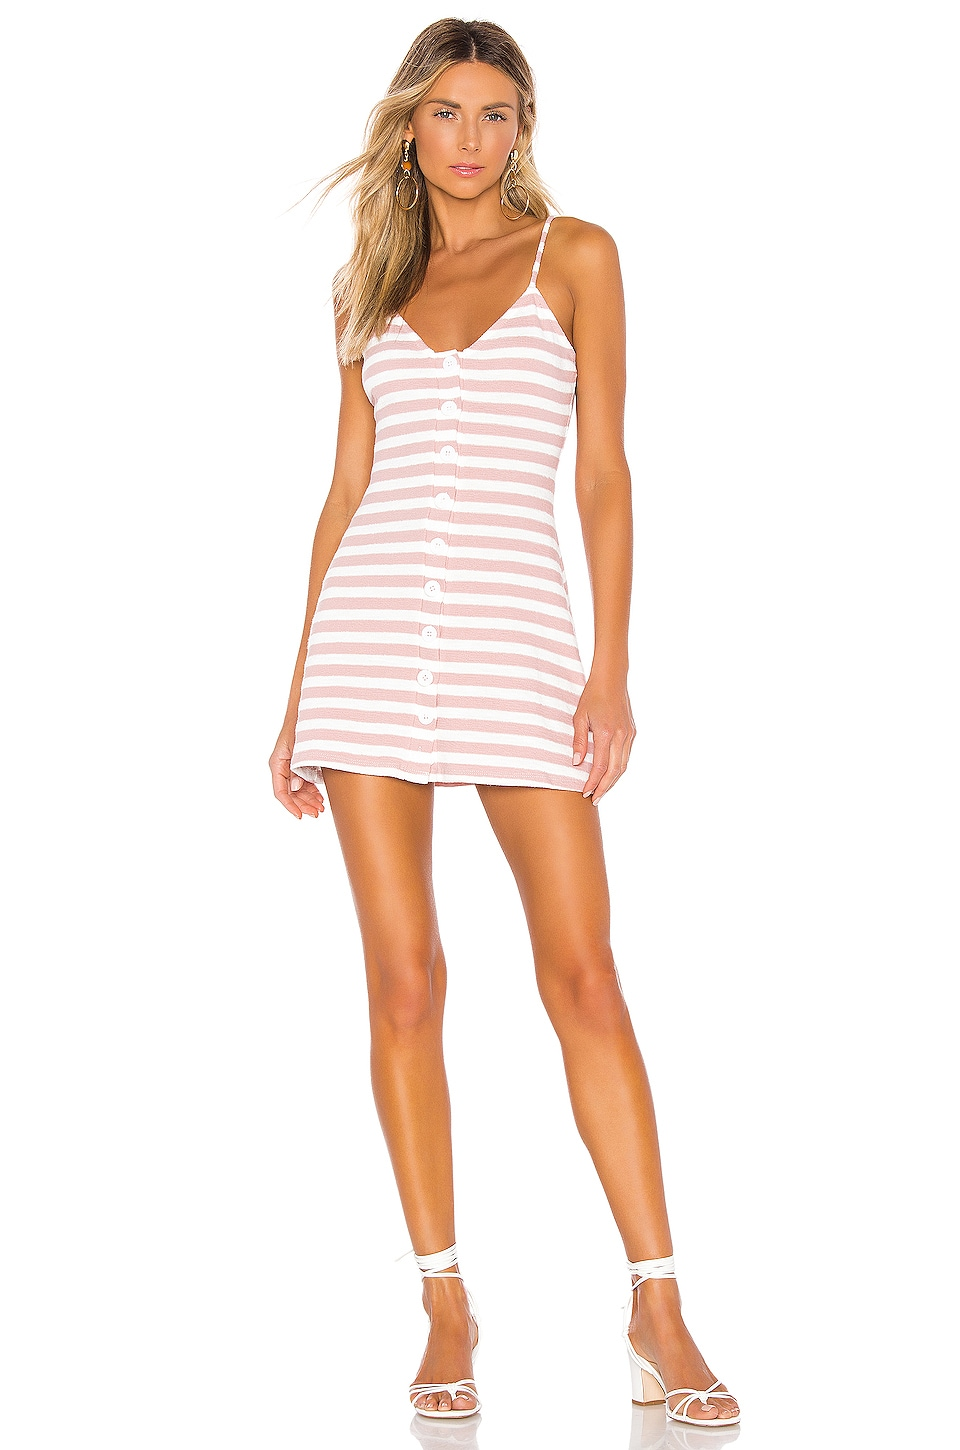 Privacy Please Hyde Mini Dress in Pink Stripe